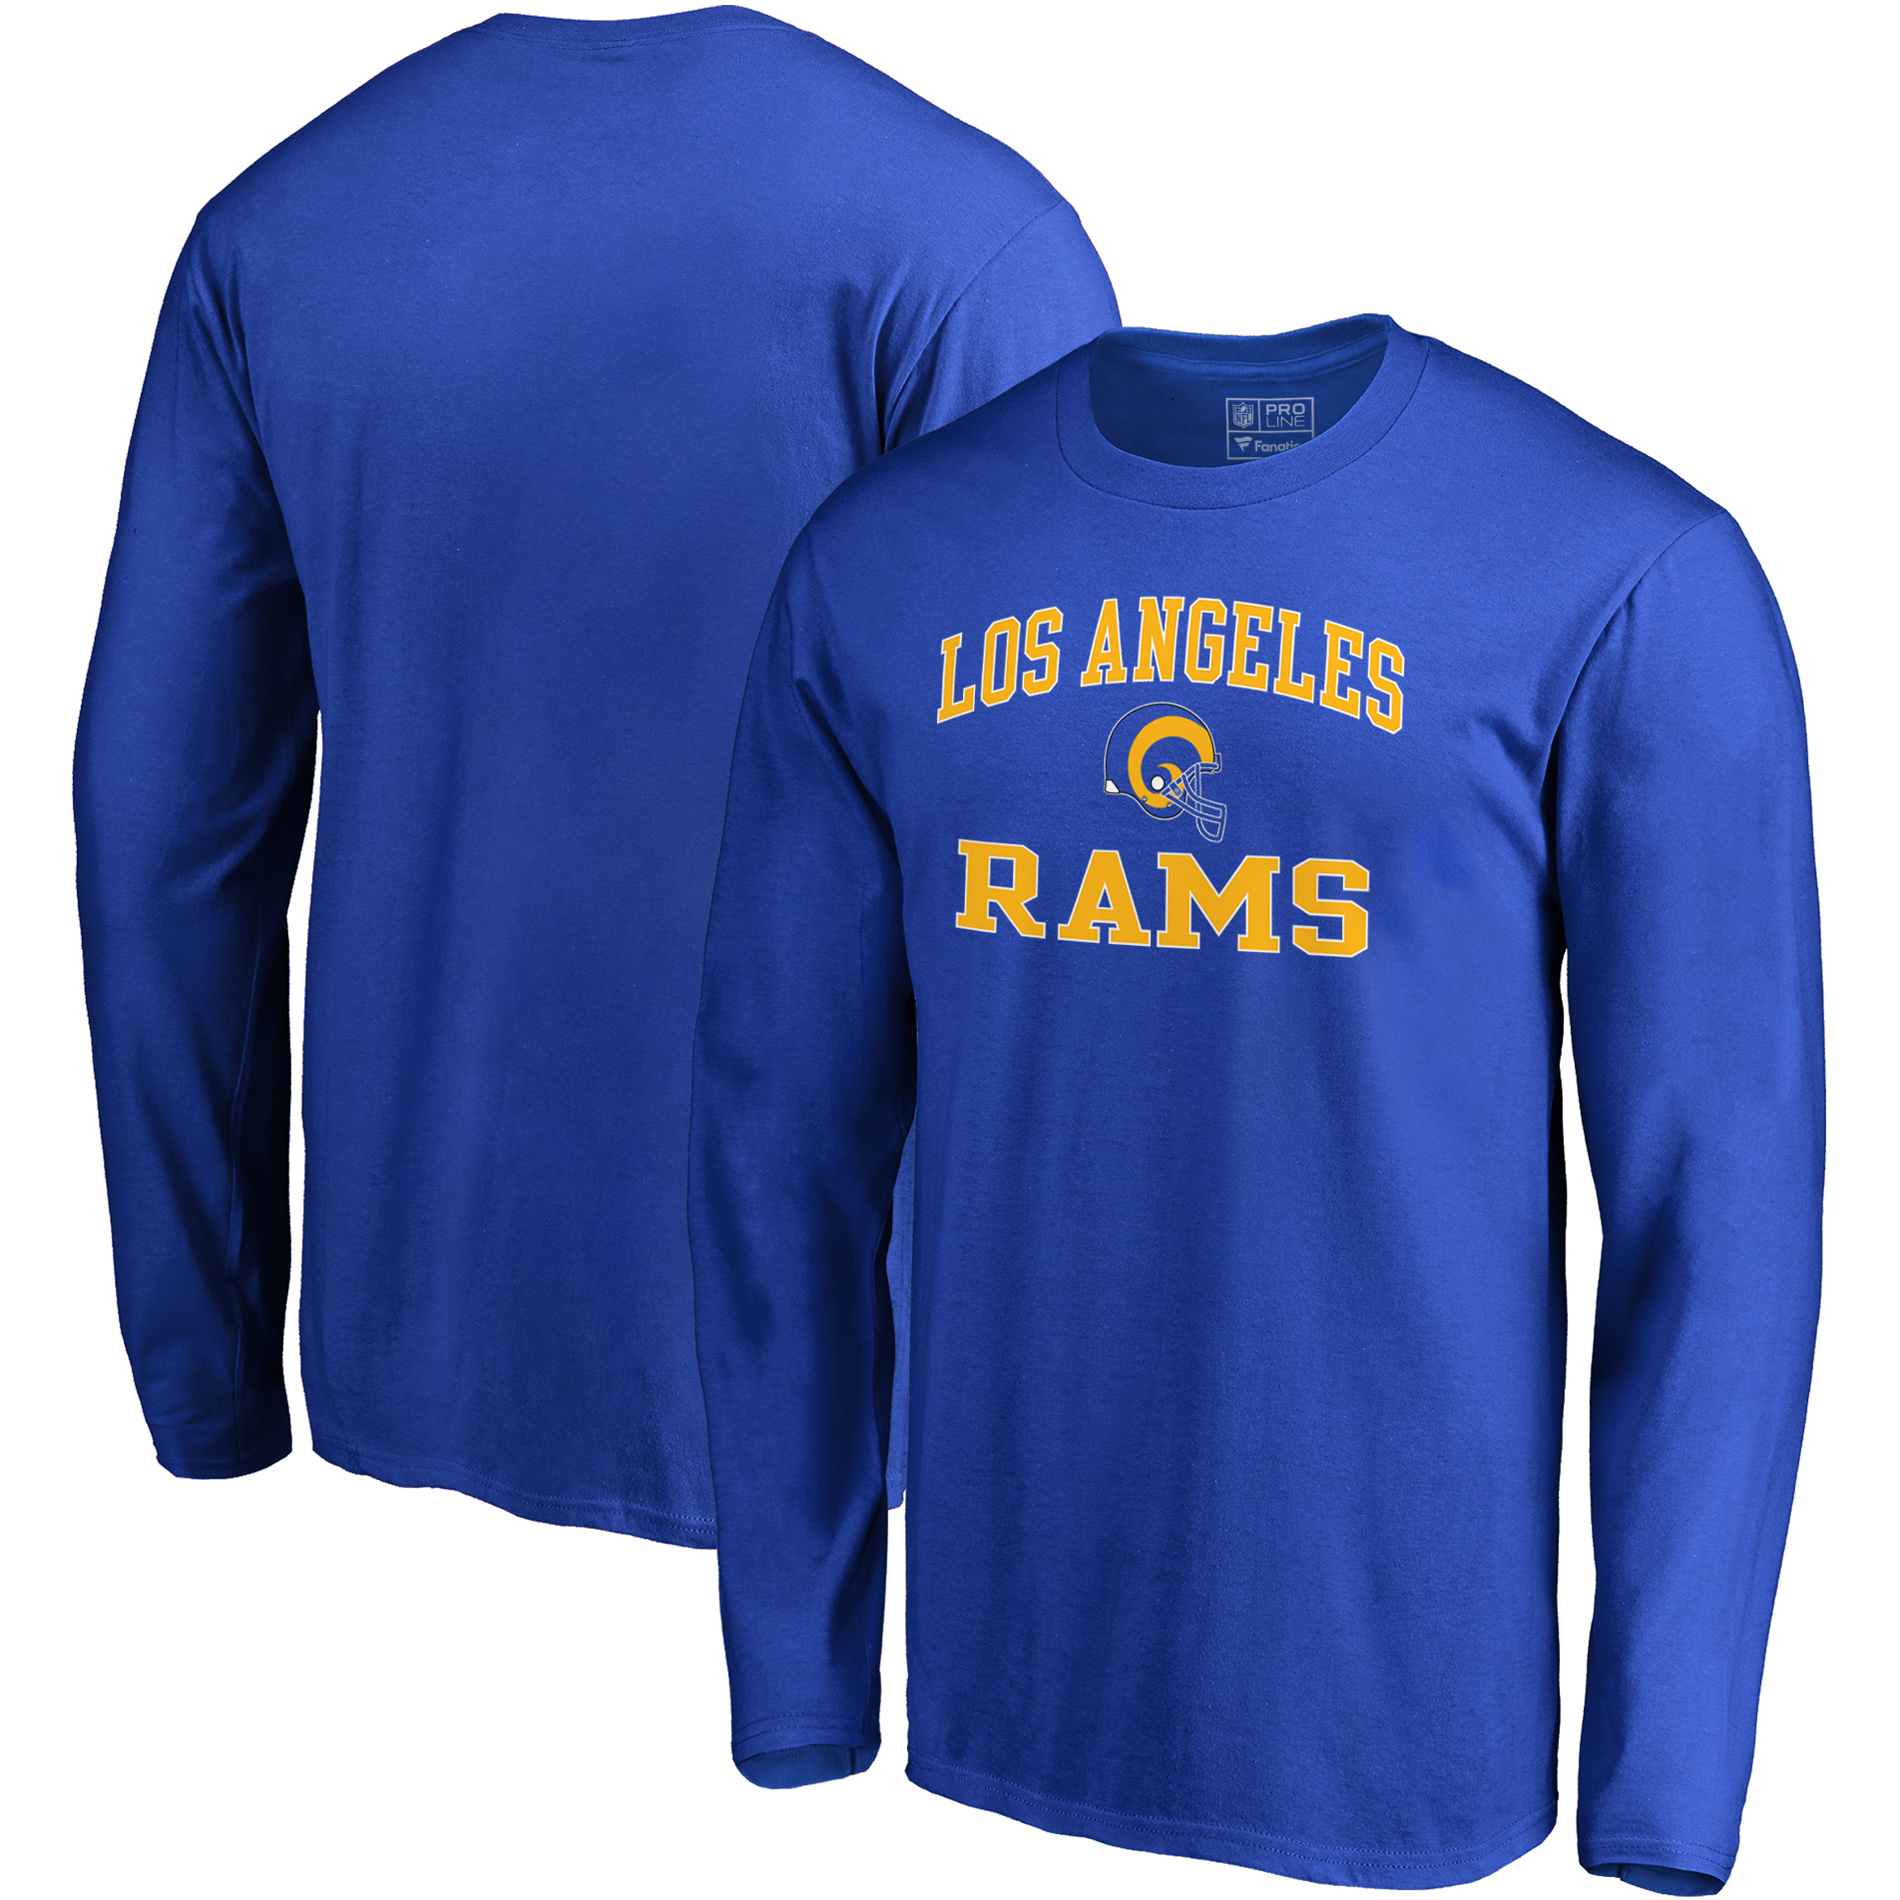 Los Angeles Rams NFL Pro Line by Fanatics Branded Vintage Victory Arch Long Sleeve T-Shirt - Royal